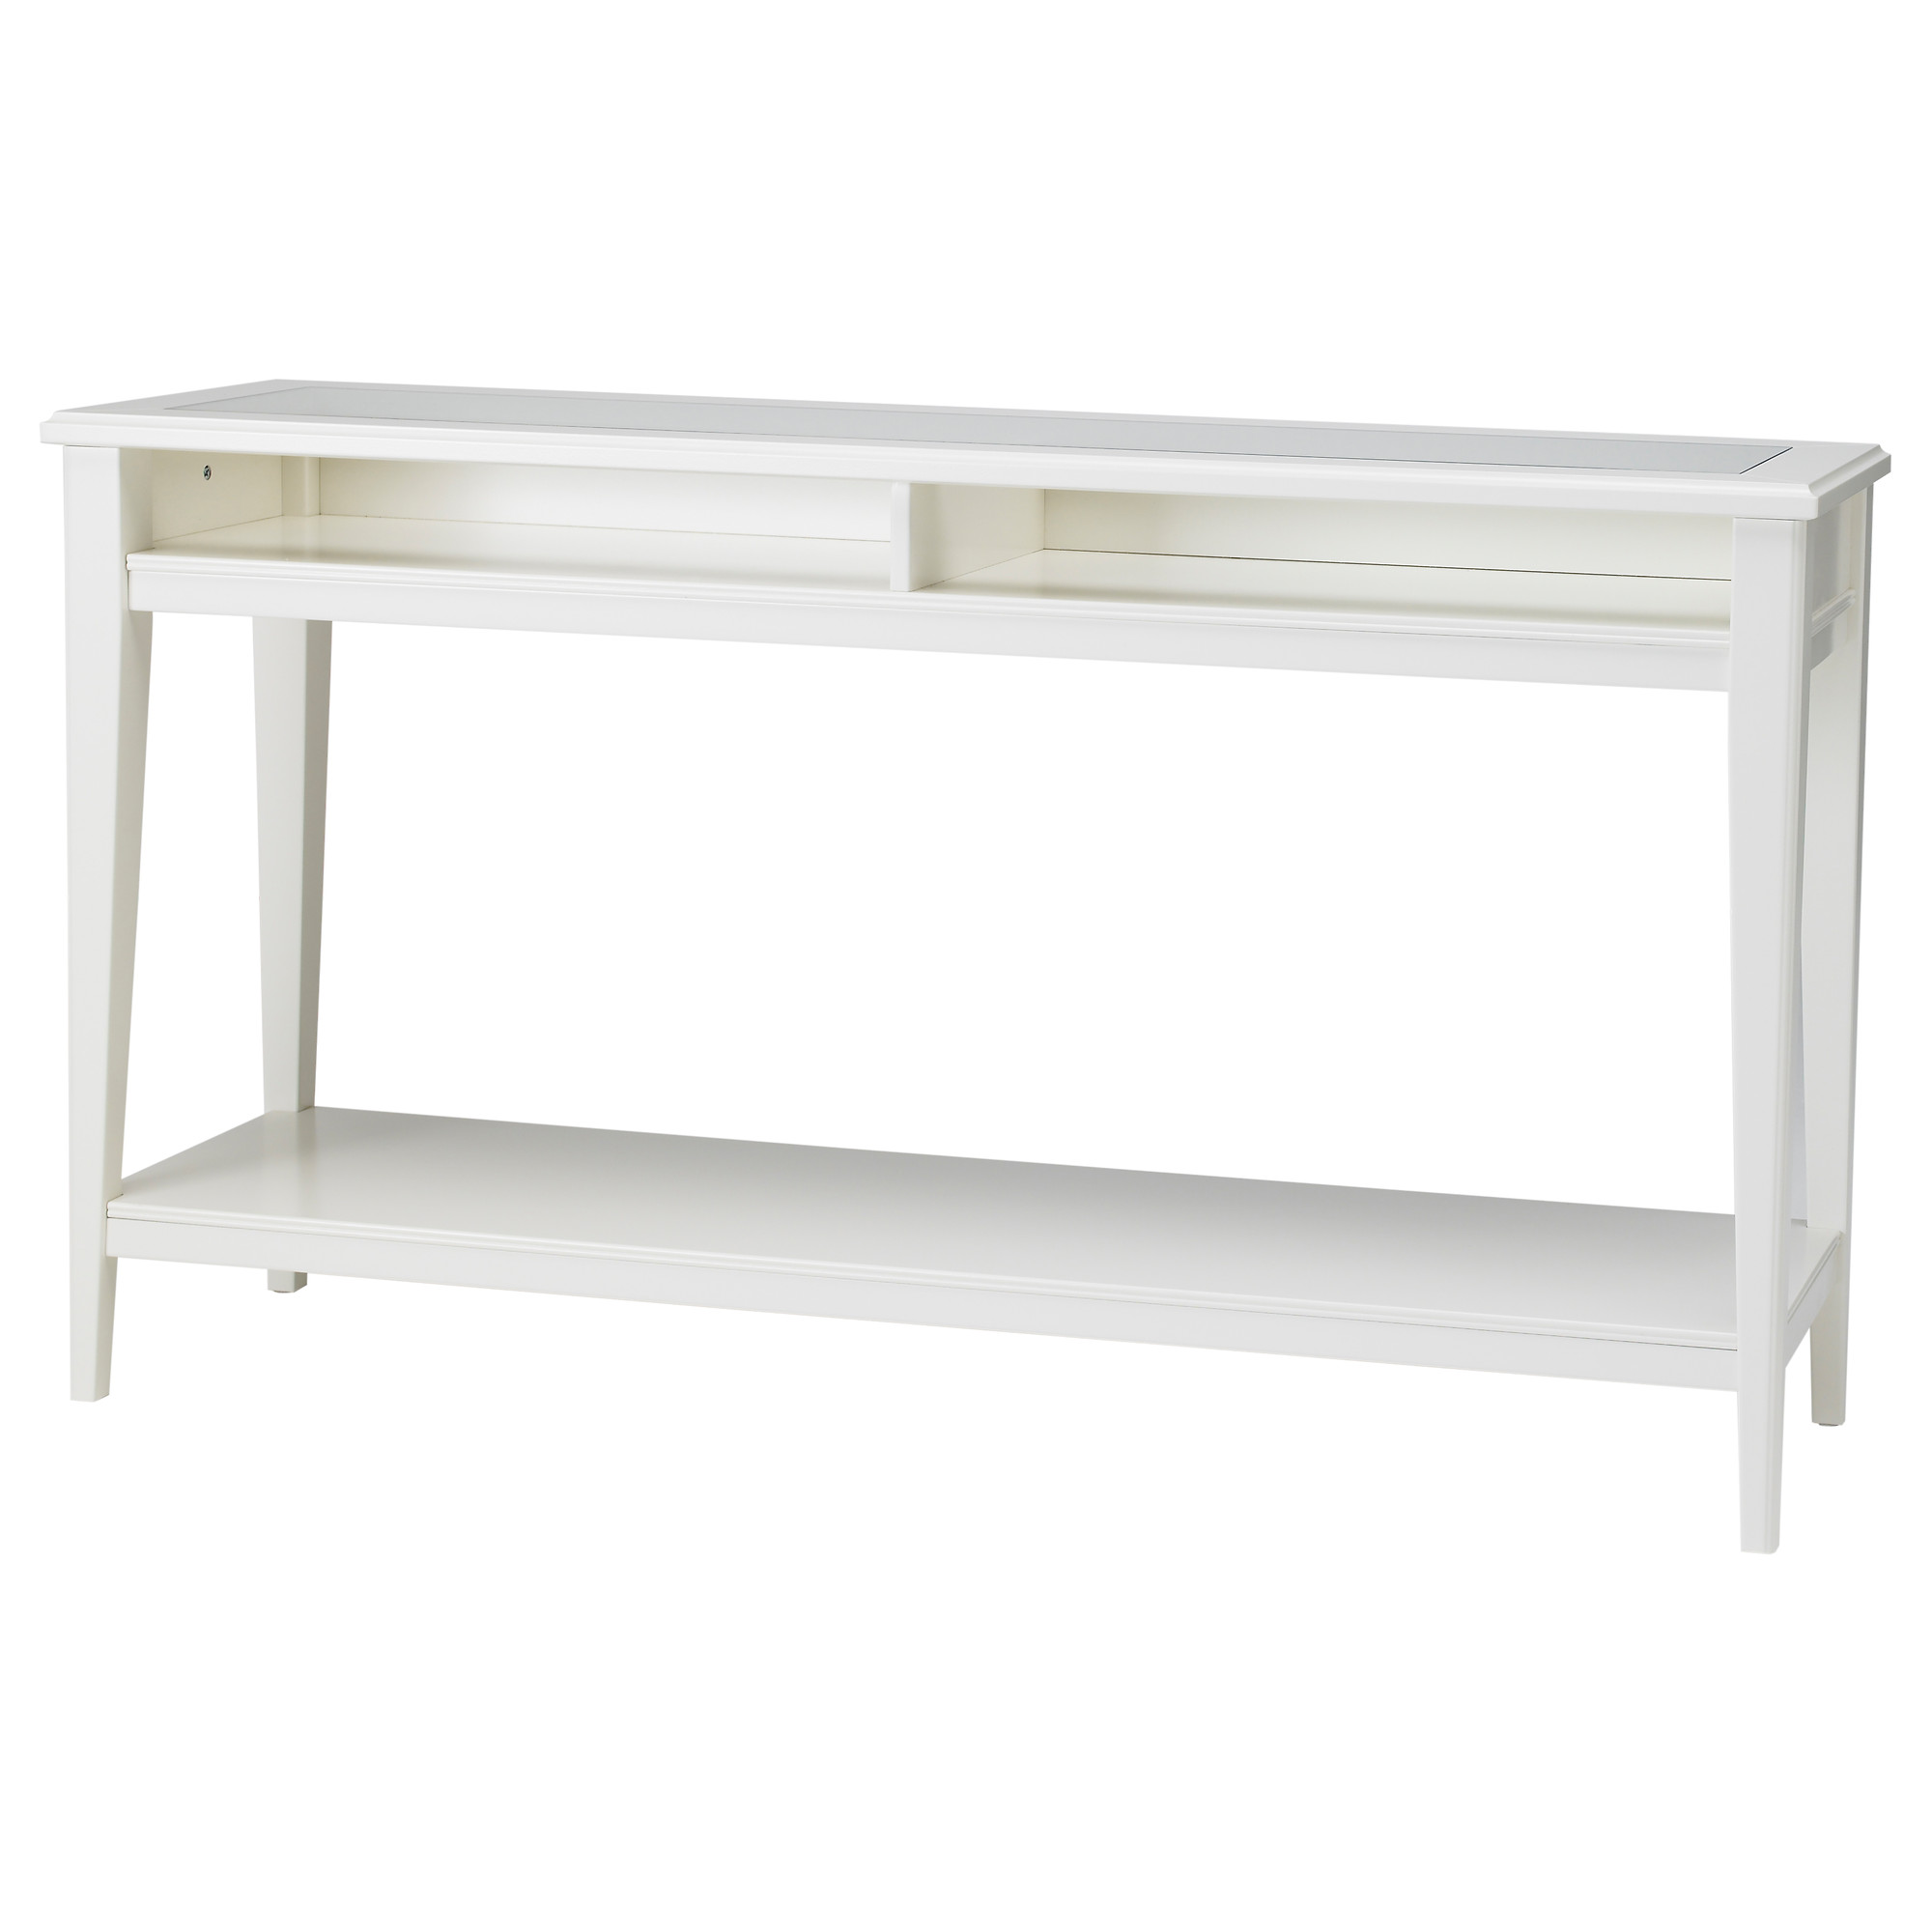 cool dazzling console tables ikea with storage beneath. Black Bedroom Furniture Sets. Home Design Ideas